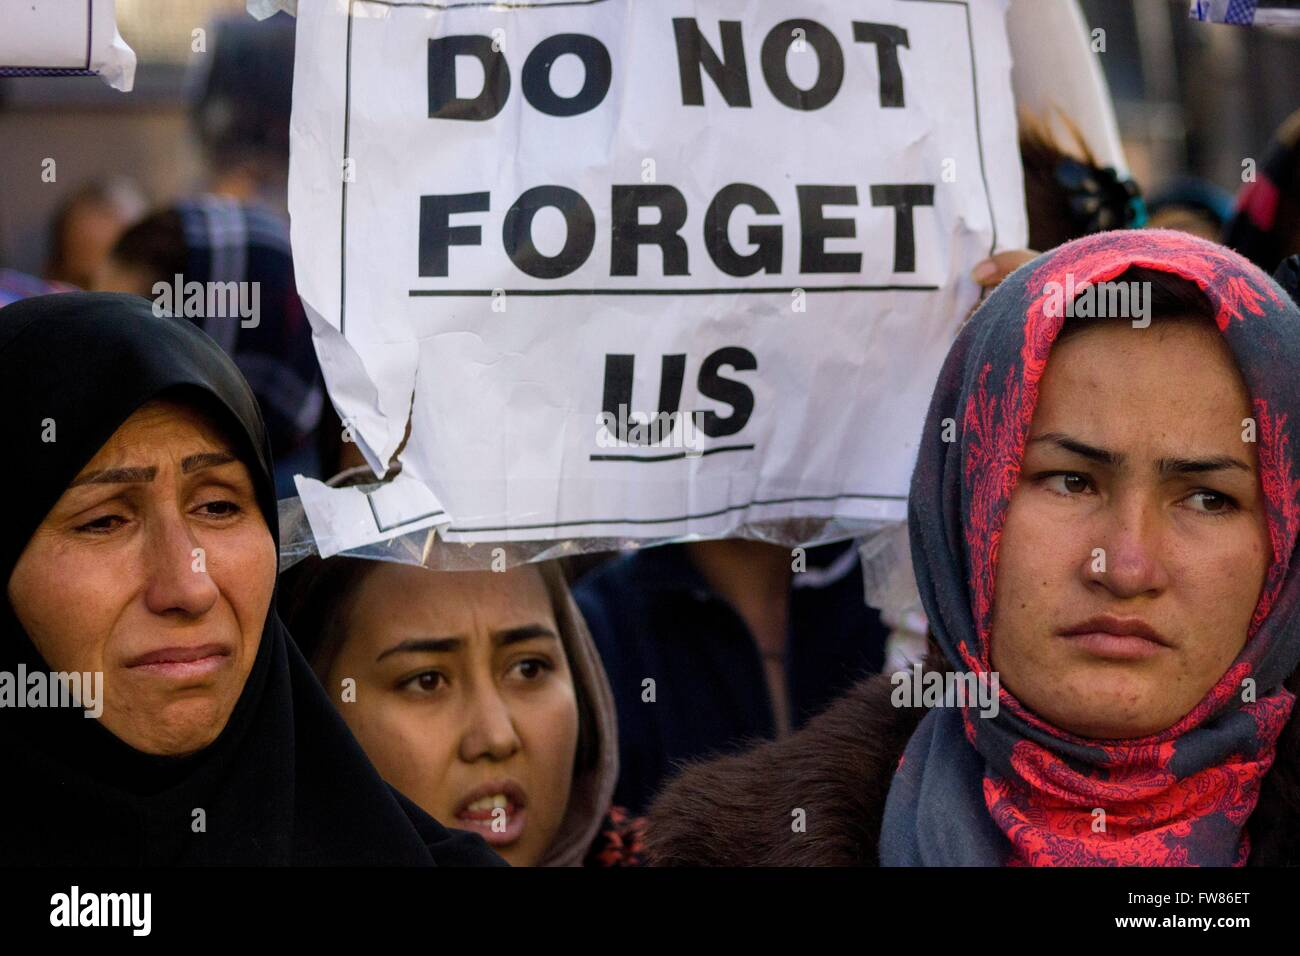 Afghan refugees protest in Athens against closed European borders. Sign 'Don_t forget us'. Refugees demand - Stock Image